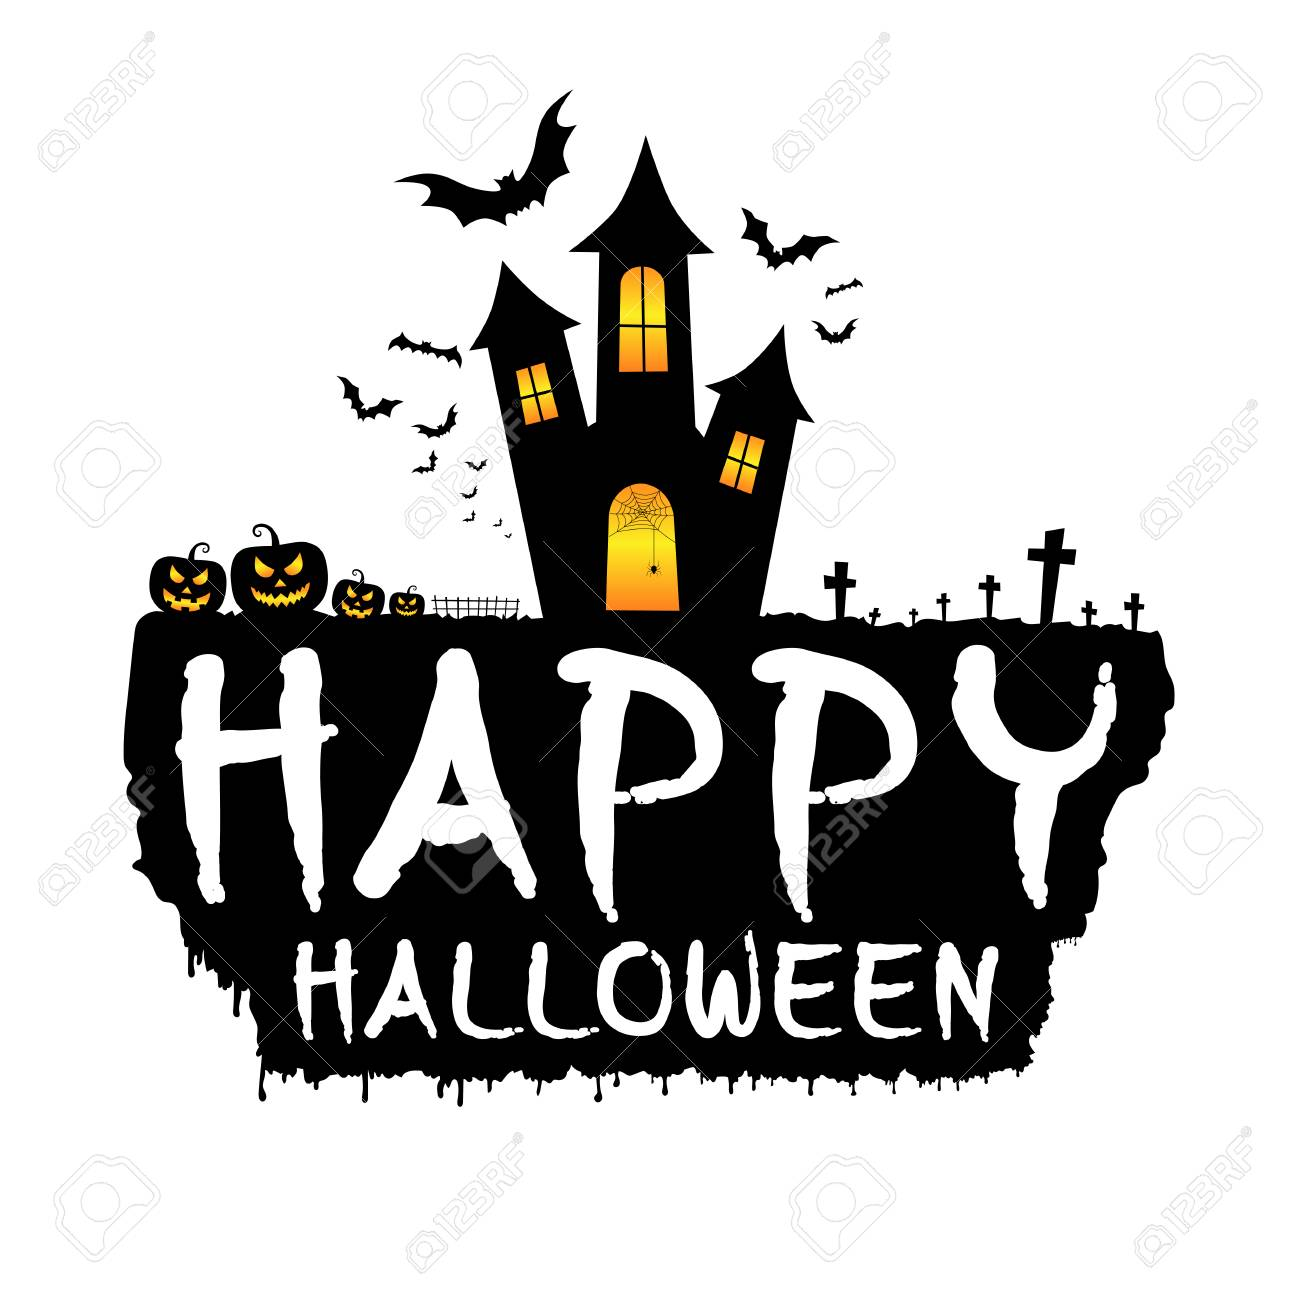 Happy halloween with dark castle scary pumpkins bats and graveyard happy halloween with dark castle scary pumpkins bats and graveyard happy halloween template maxwellsz